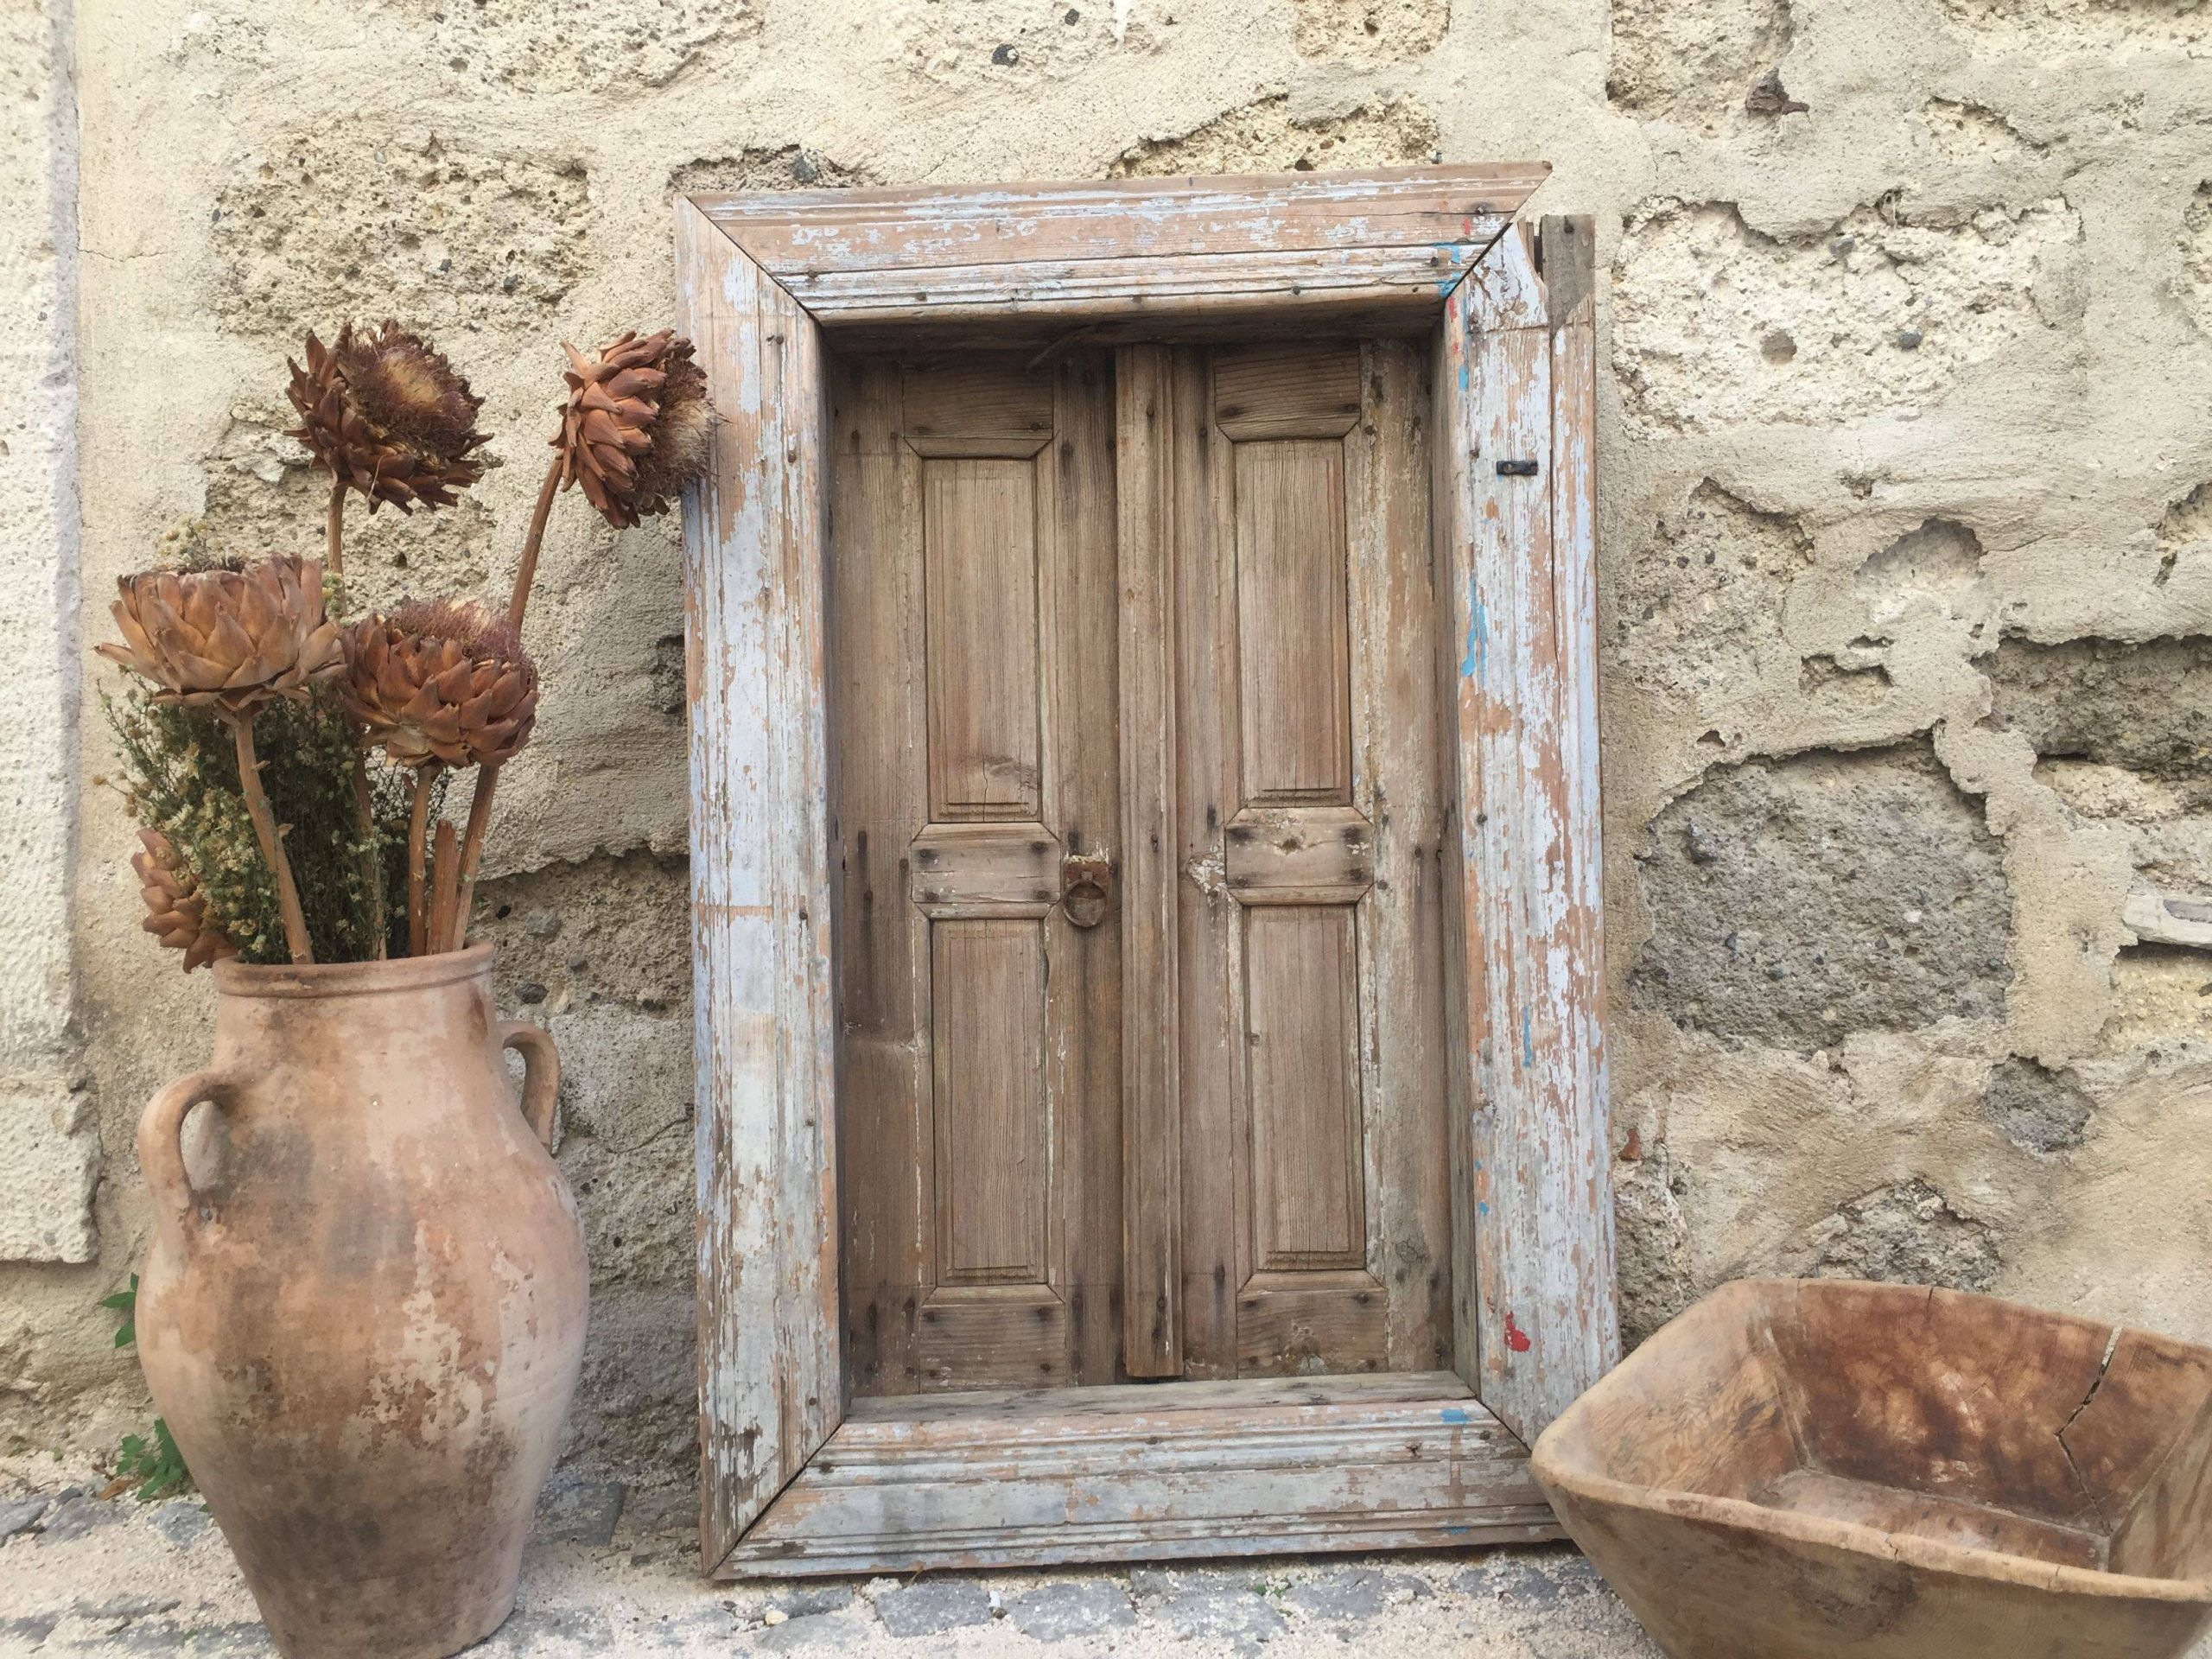 Incredible Old Wood Wall Decor Inspirational Your Place to and Sell All Things Handmade